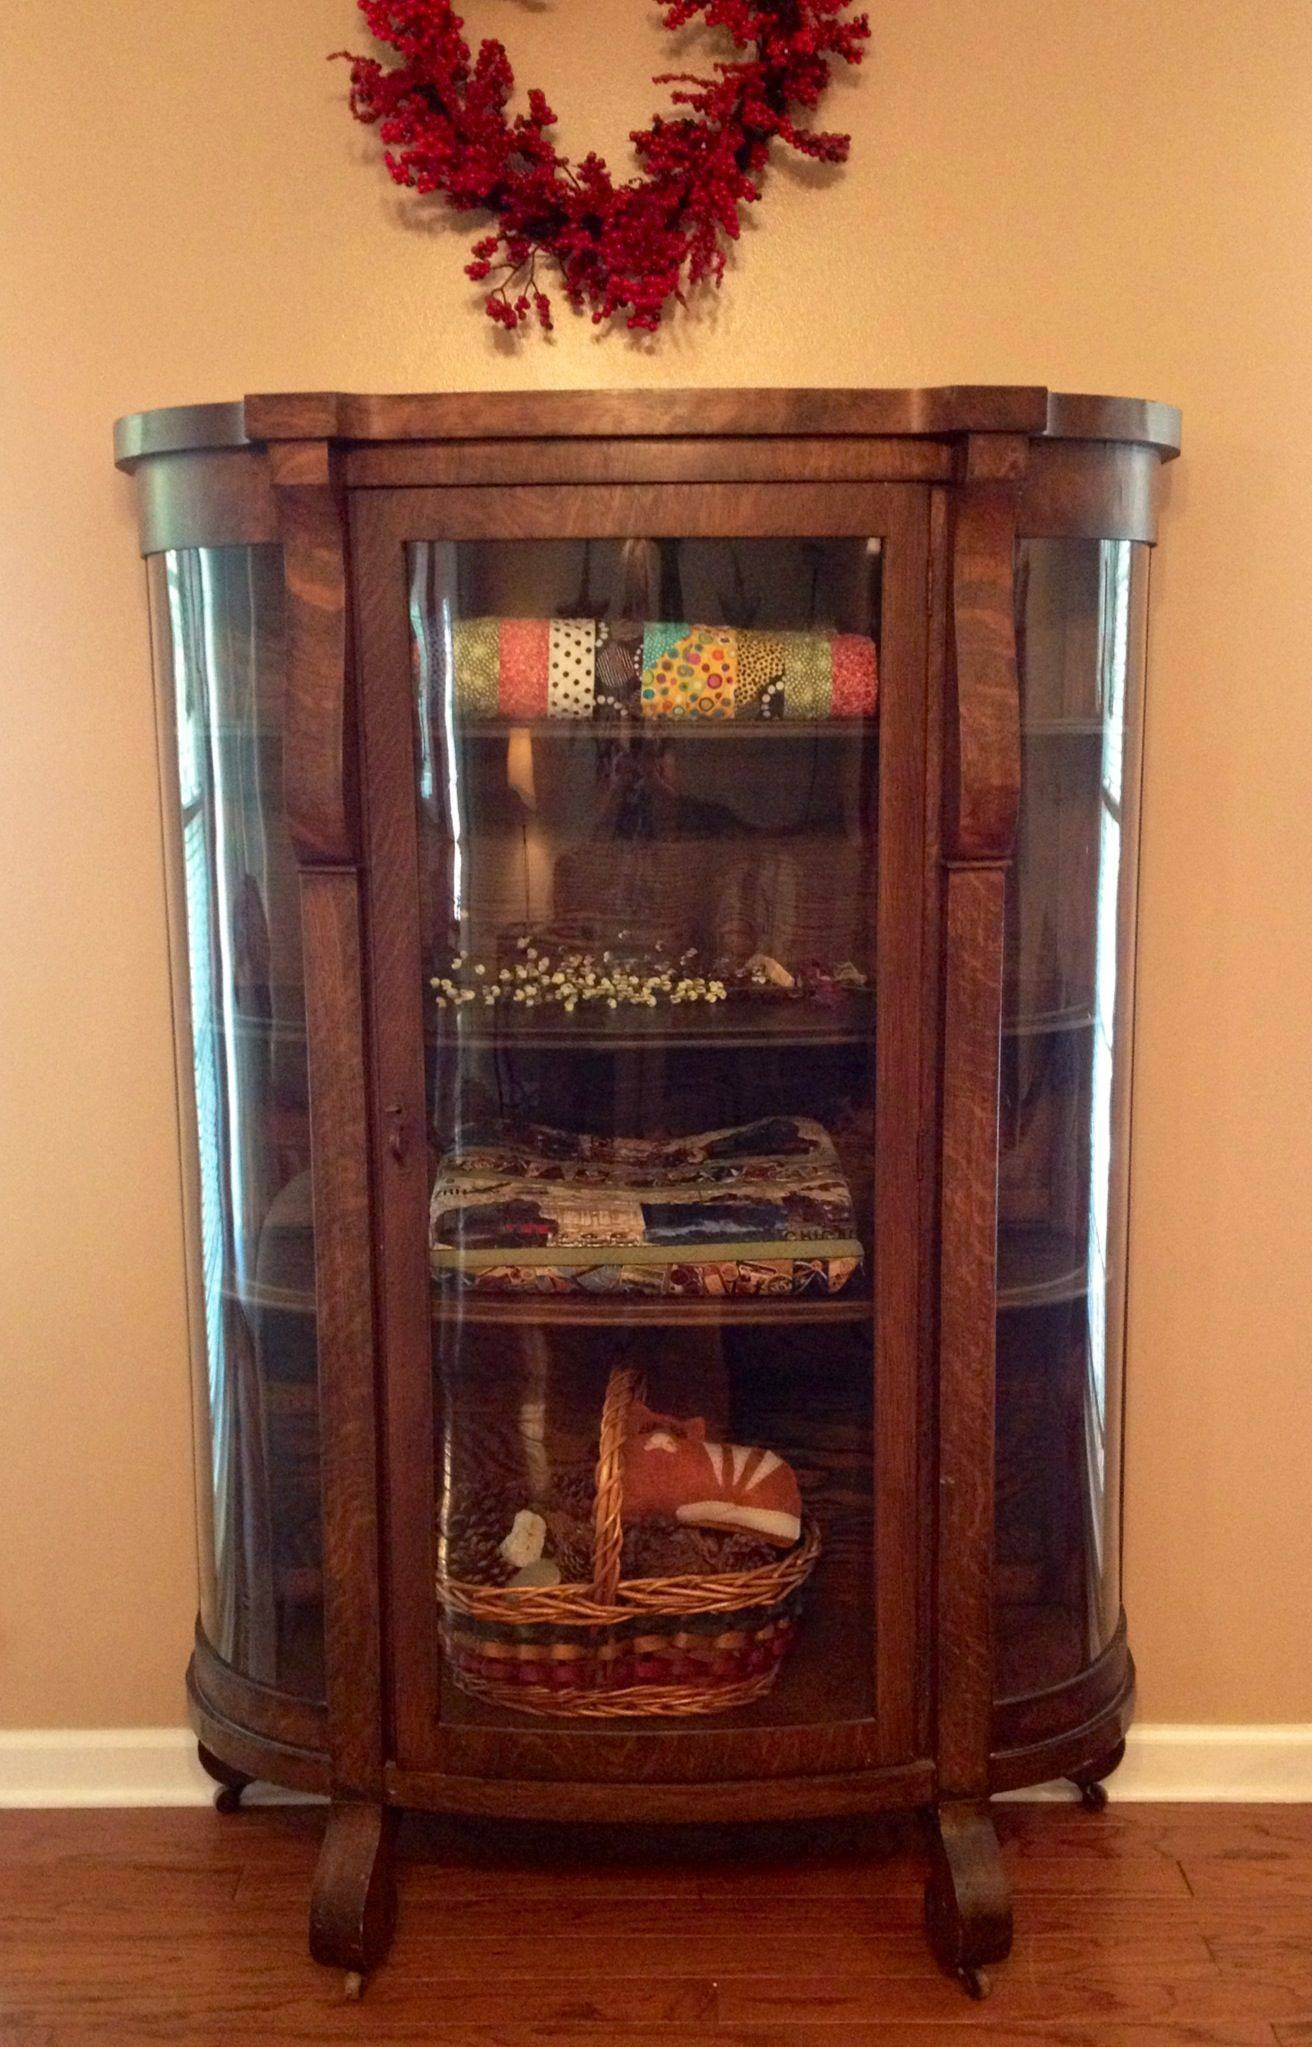 Antique Furniture Near Me Unique Quilt Display Cabi Antique China Cabi with Wood Shelves and